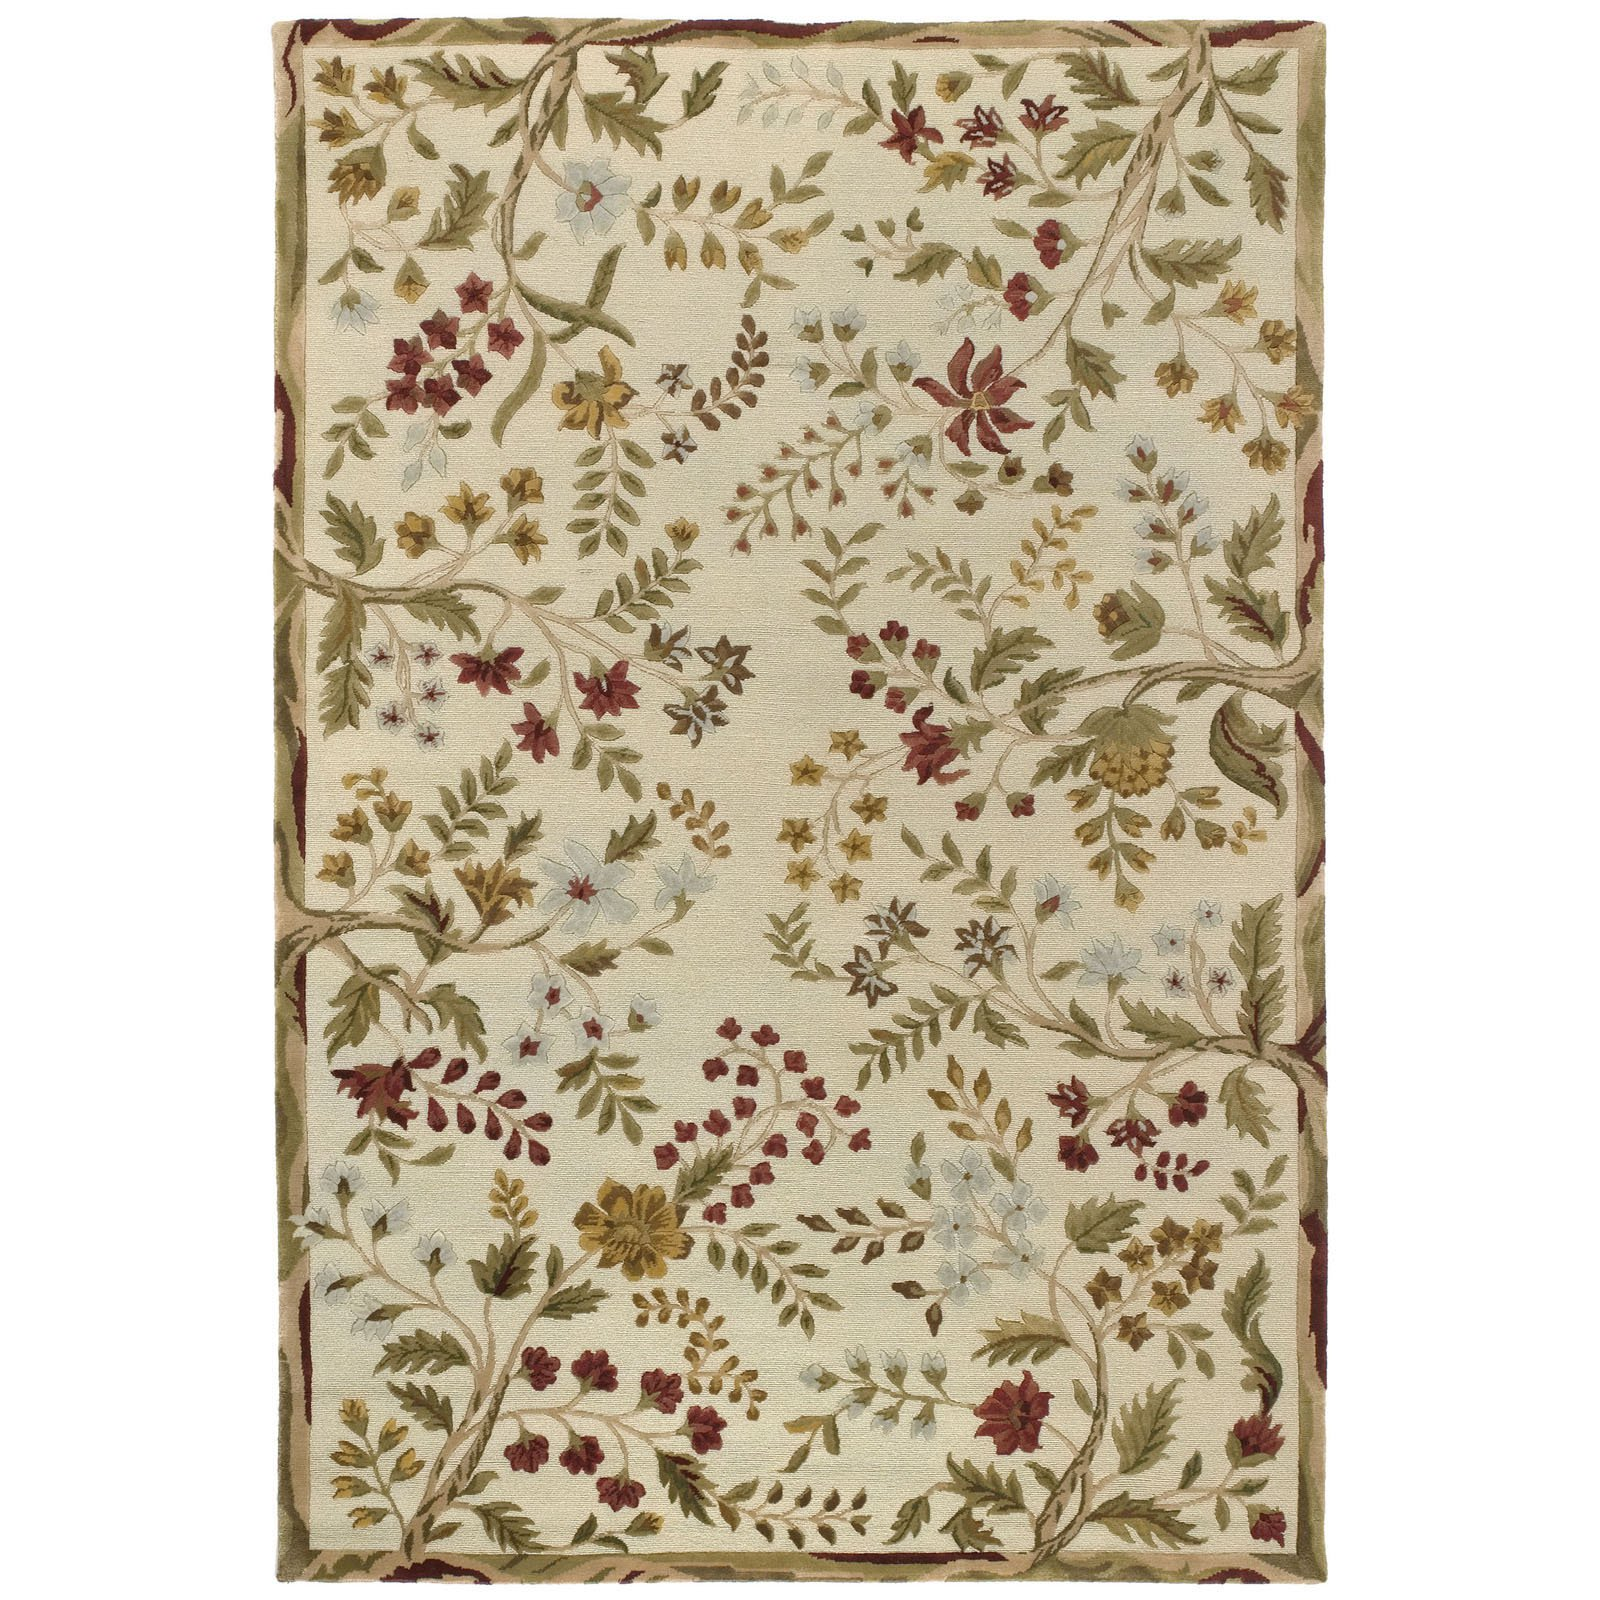 Couristan Eden Summer Vines Ivory/Ruby Area Rug